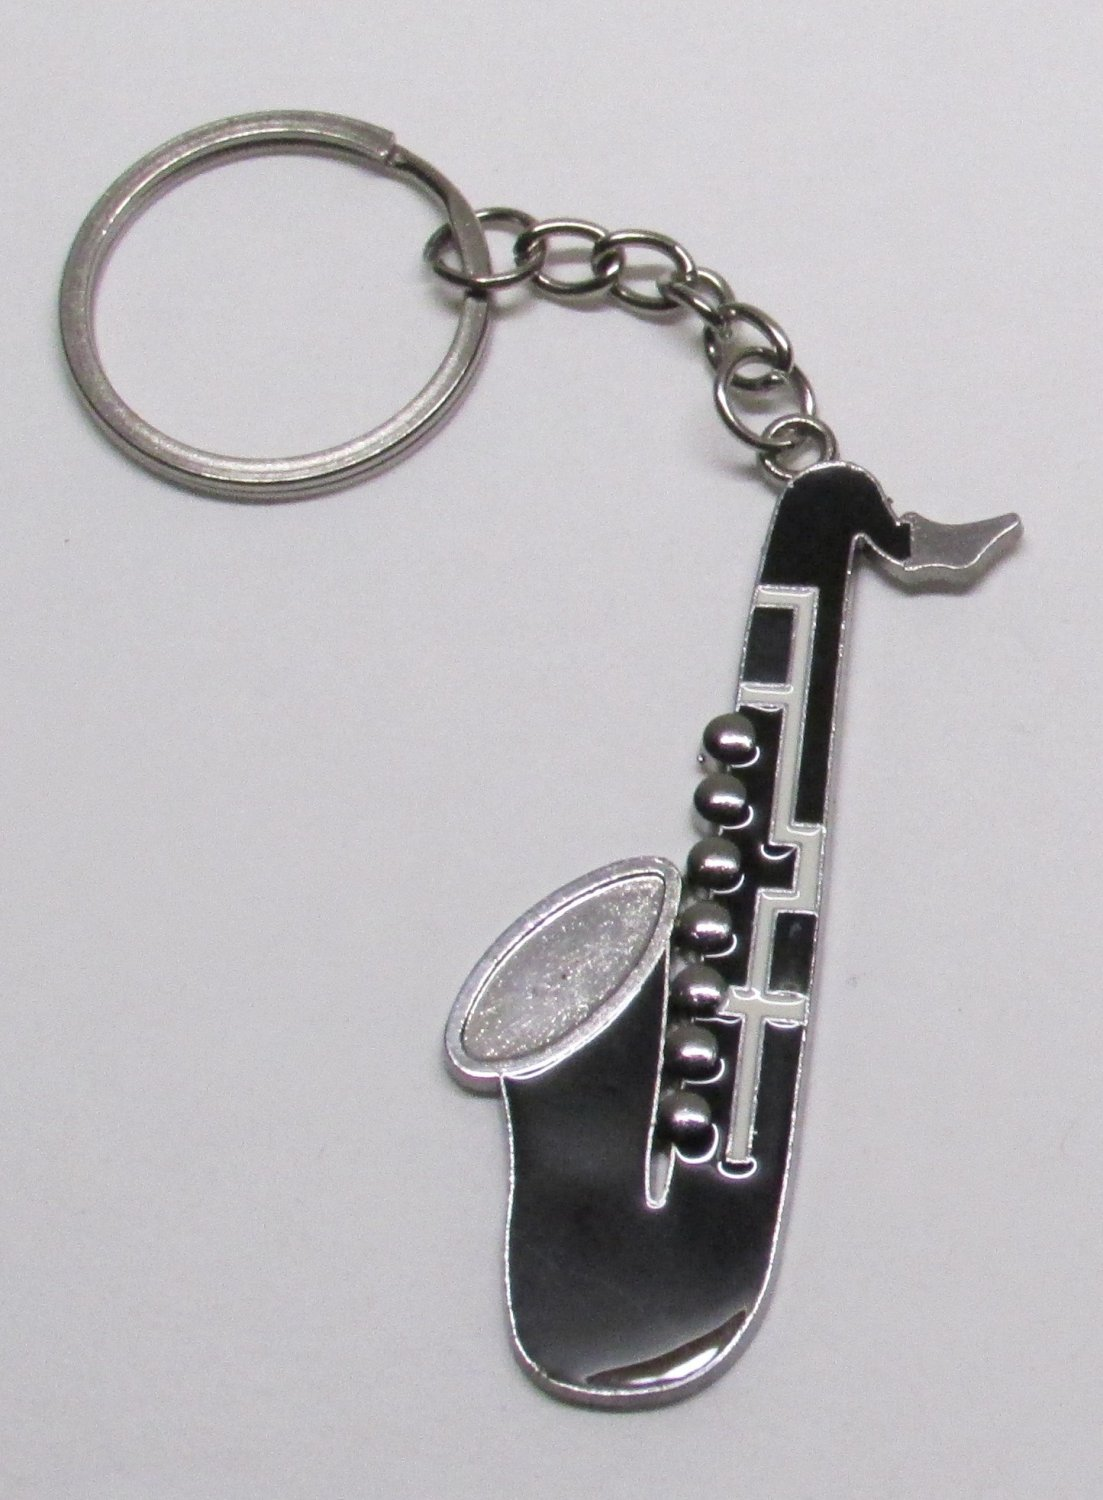 SAXOPHONE Black Silver Plated Metal Alloy KEY CHAIN Ring Keychain NEW